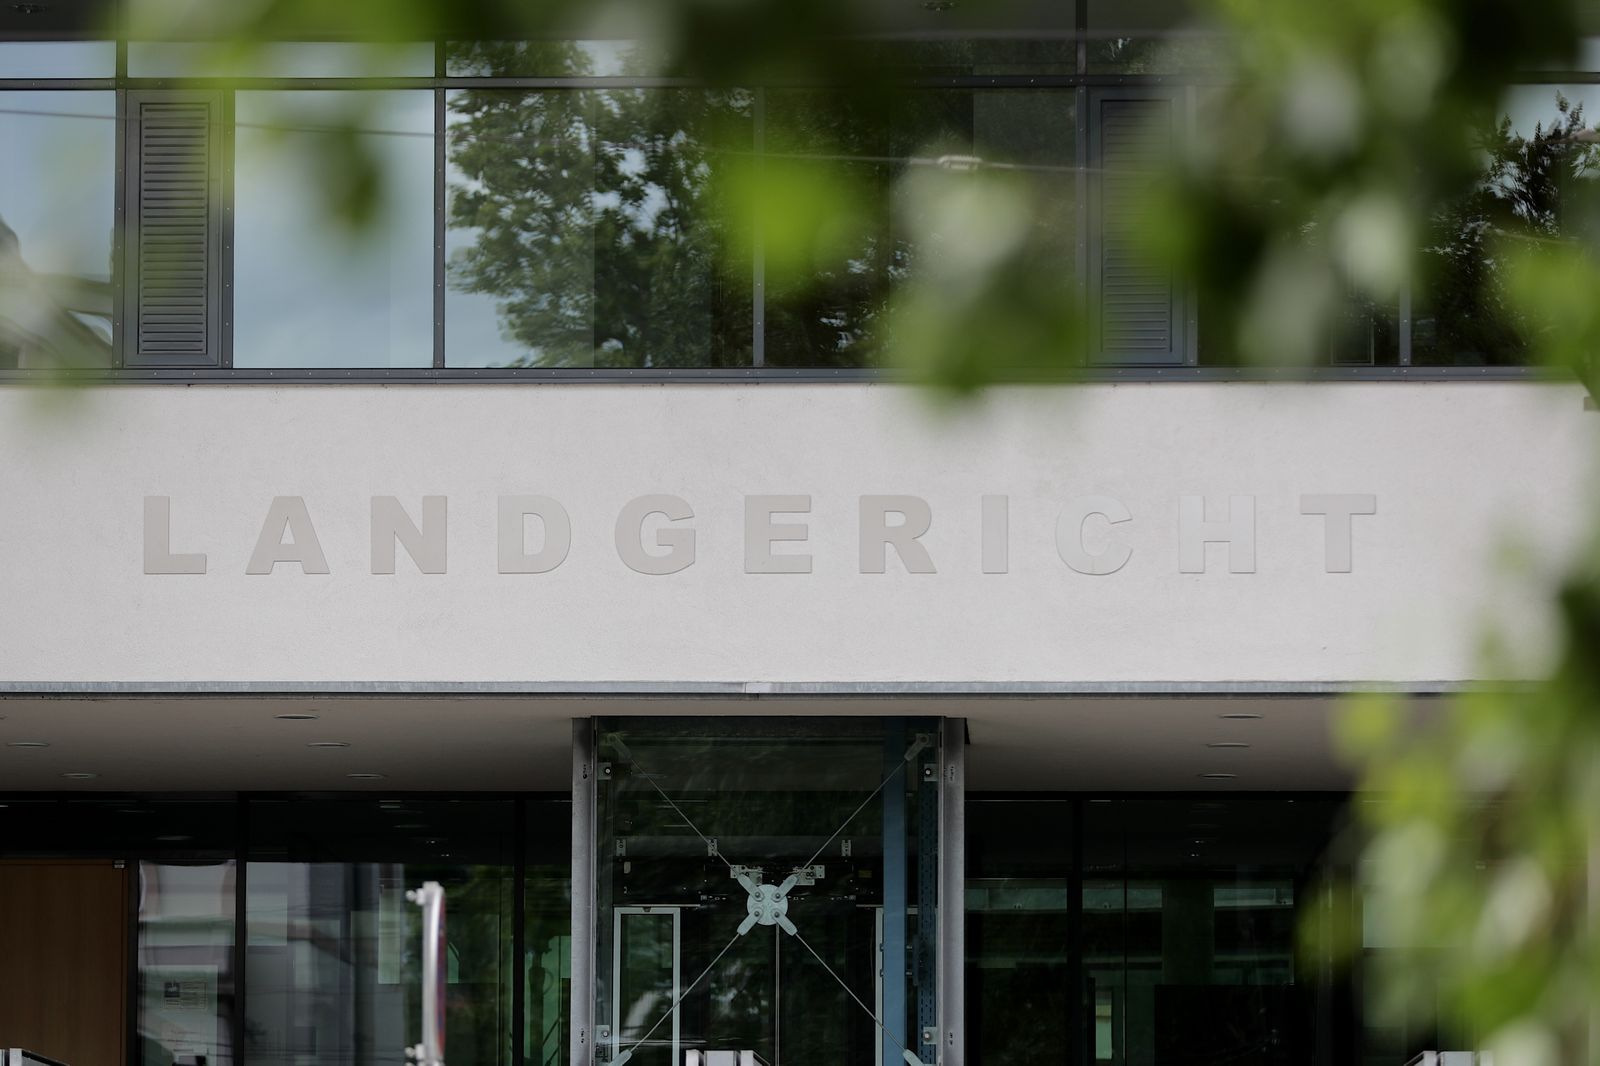 Trial over 2019 Halle shooting set to start at Magdeburg regional court, Germany - 20 Jul 2020